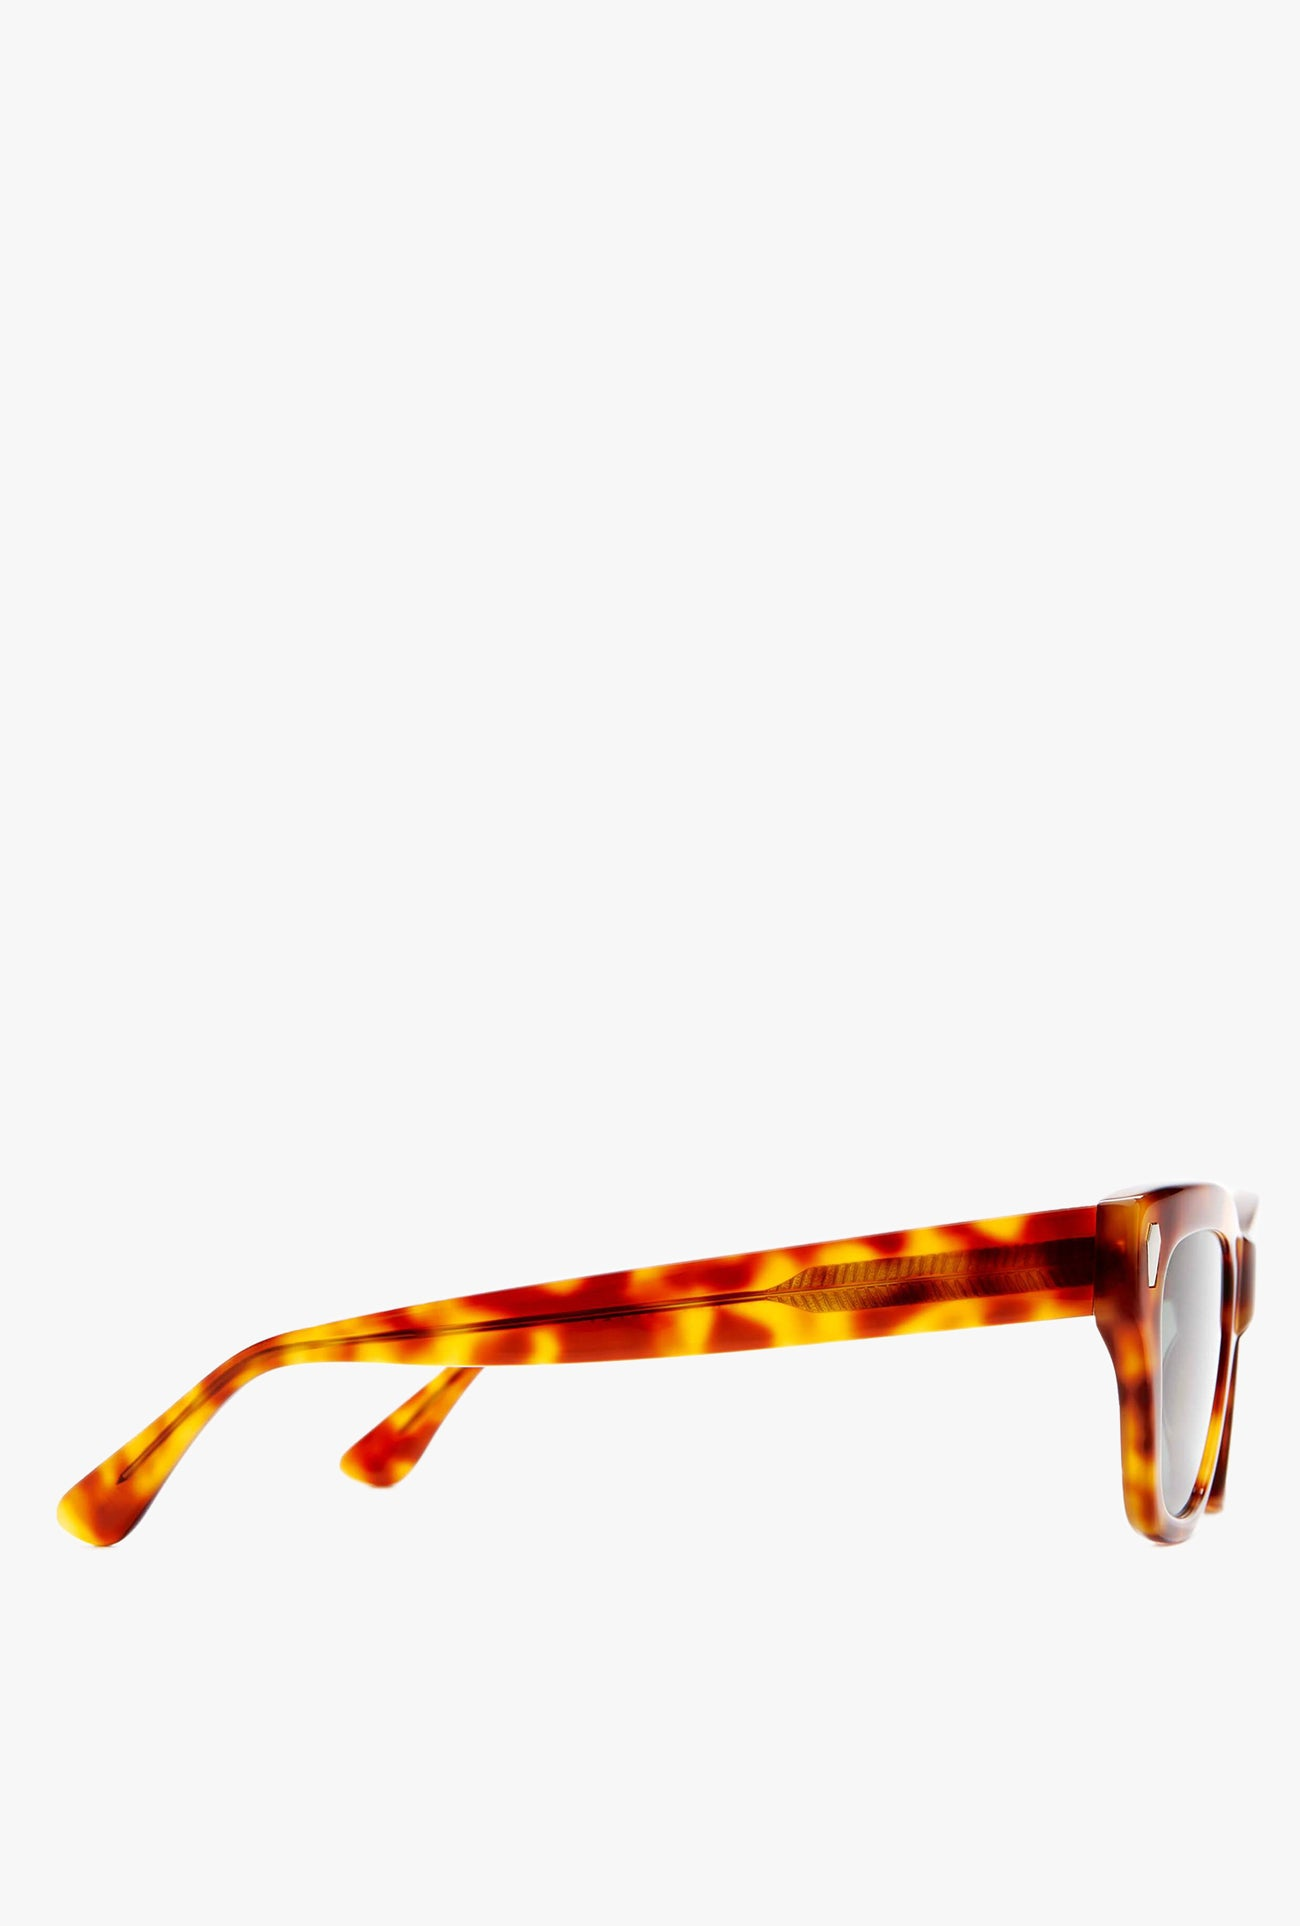 The Cosmic Highway Sunglass